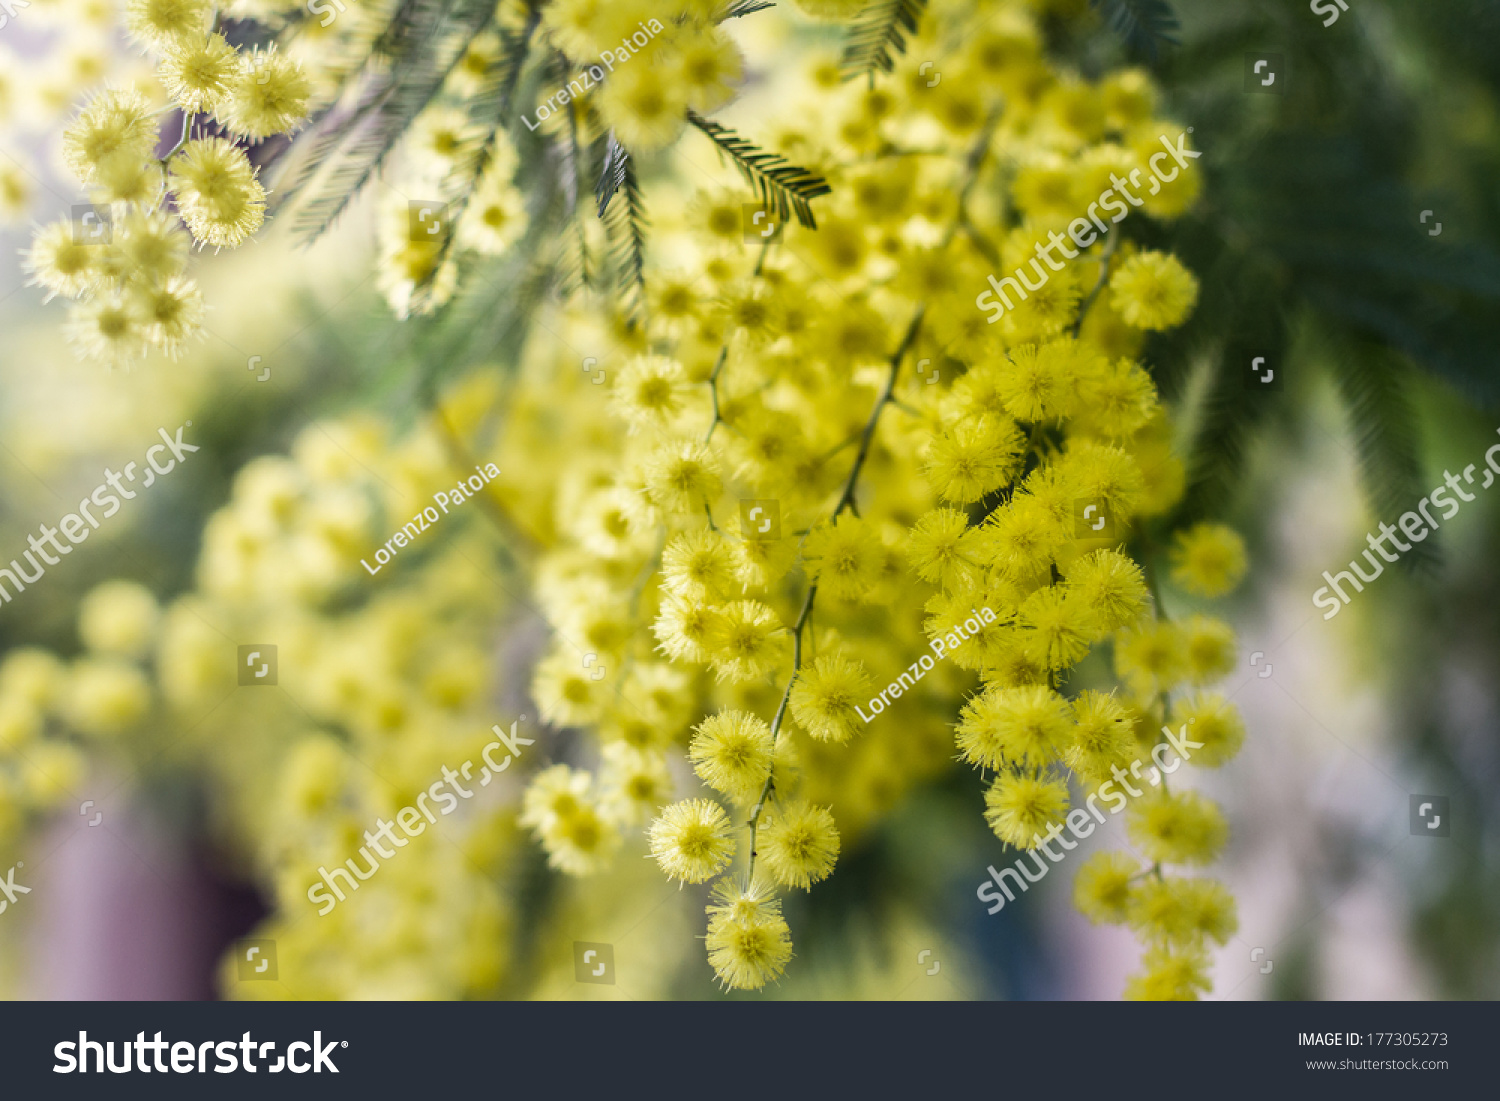 Mimosa flowers #177305273